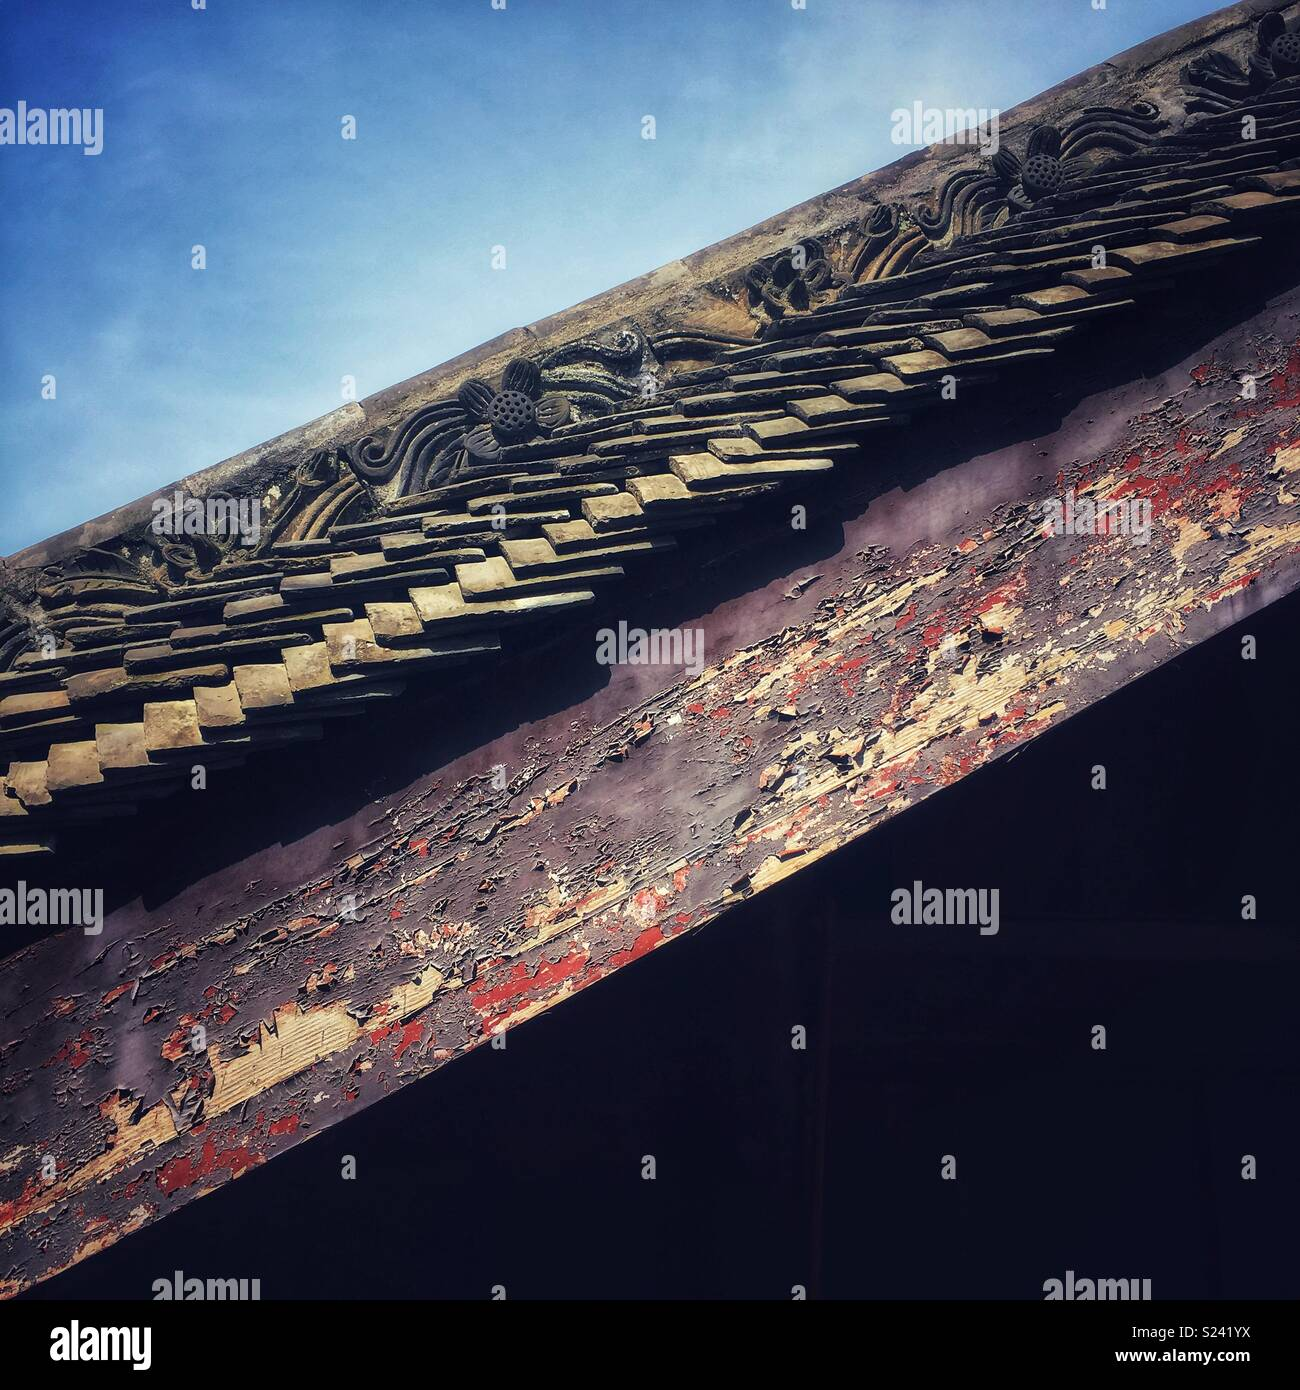 Slate Roofing Stock Photos Amp Slate Roofing Stock Images